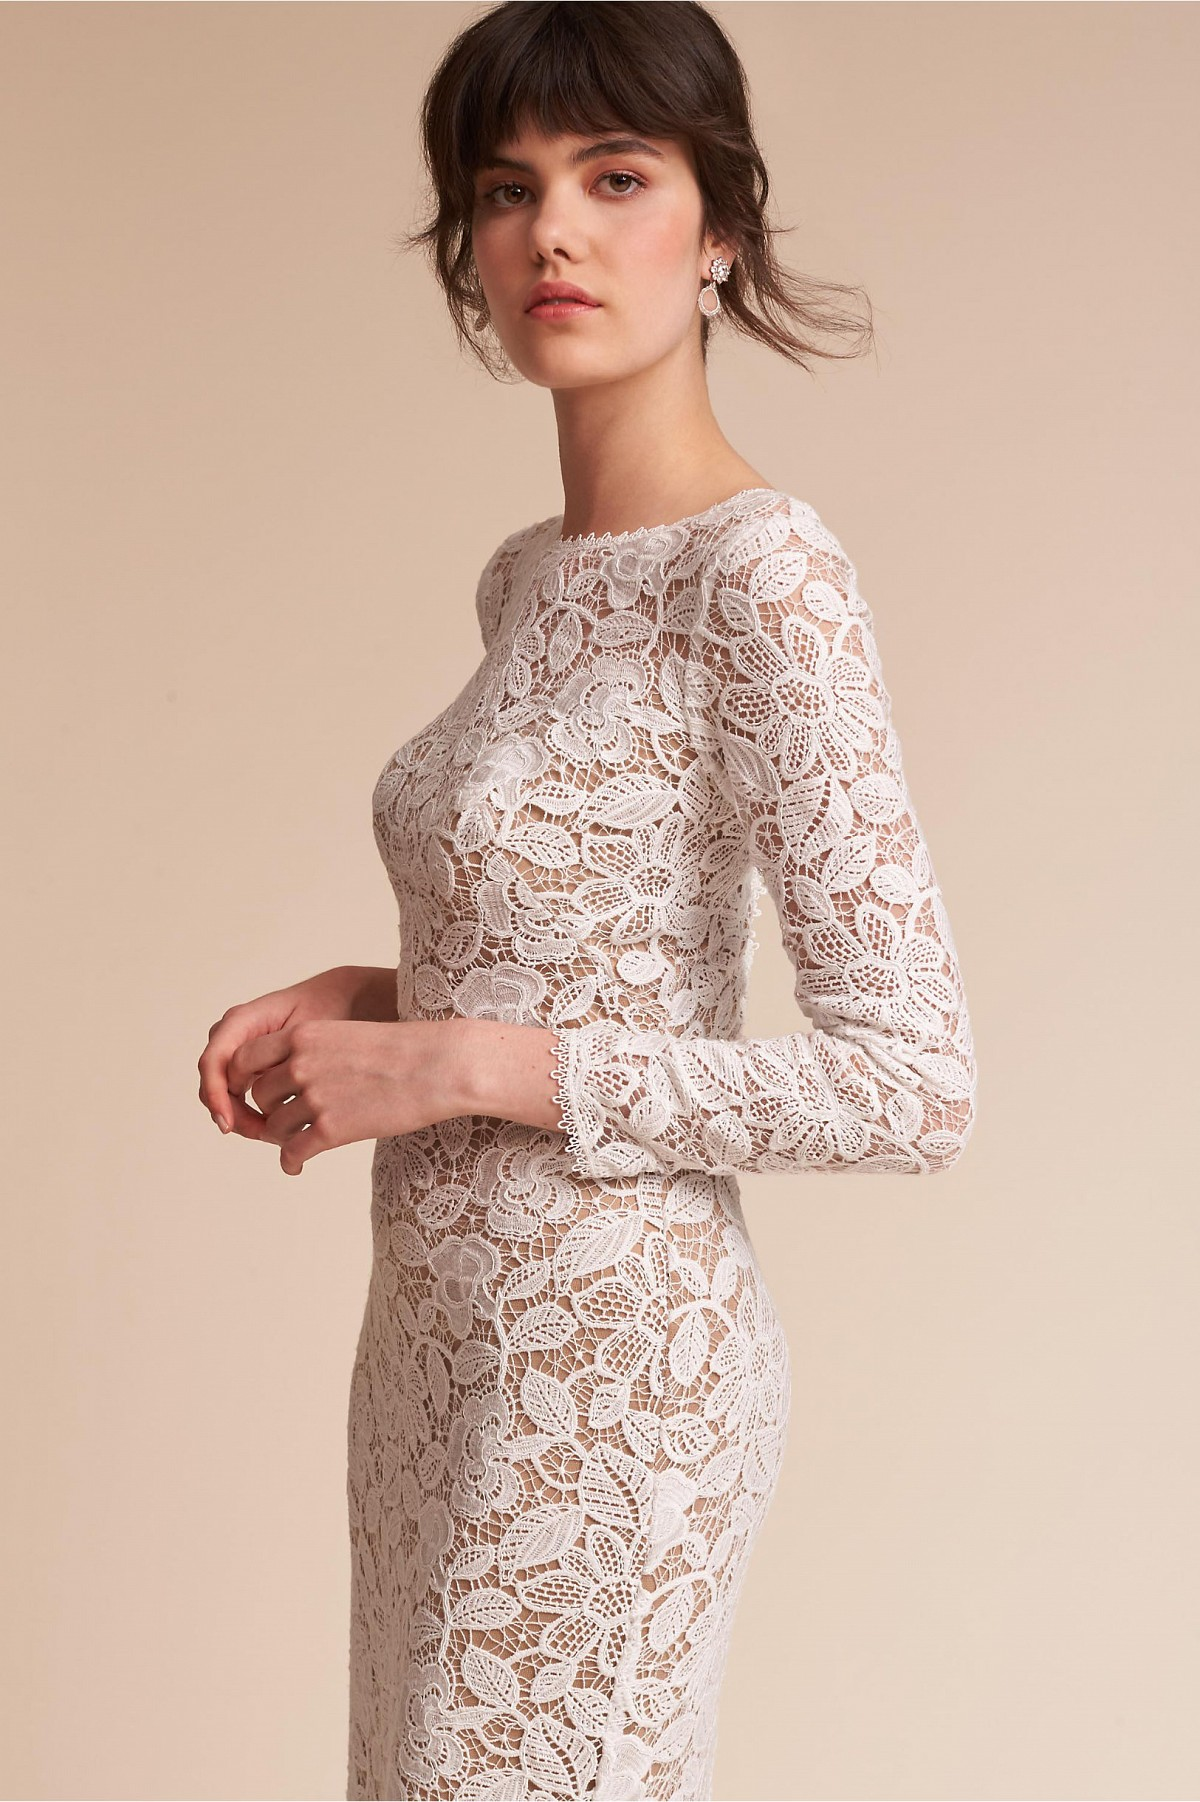 5 long sleeve wedding gowns we love | Wedding Sparrow